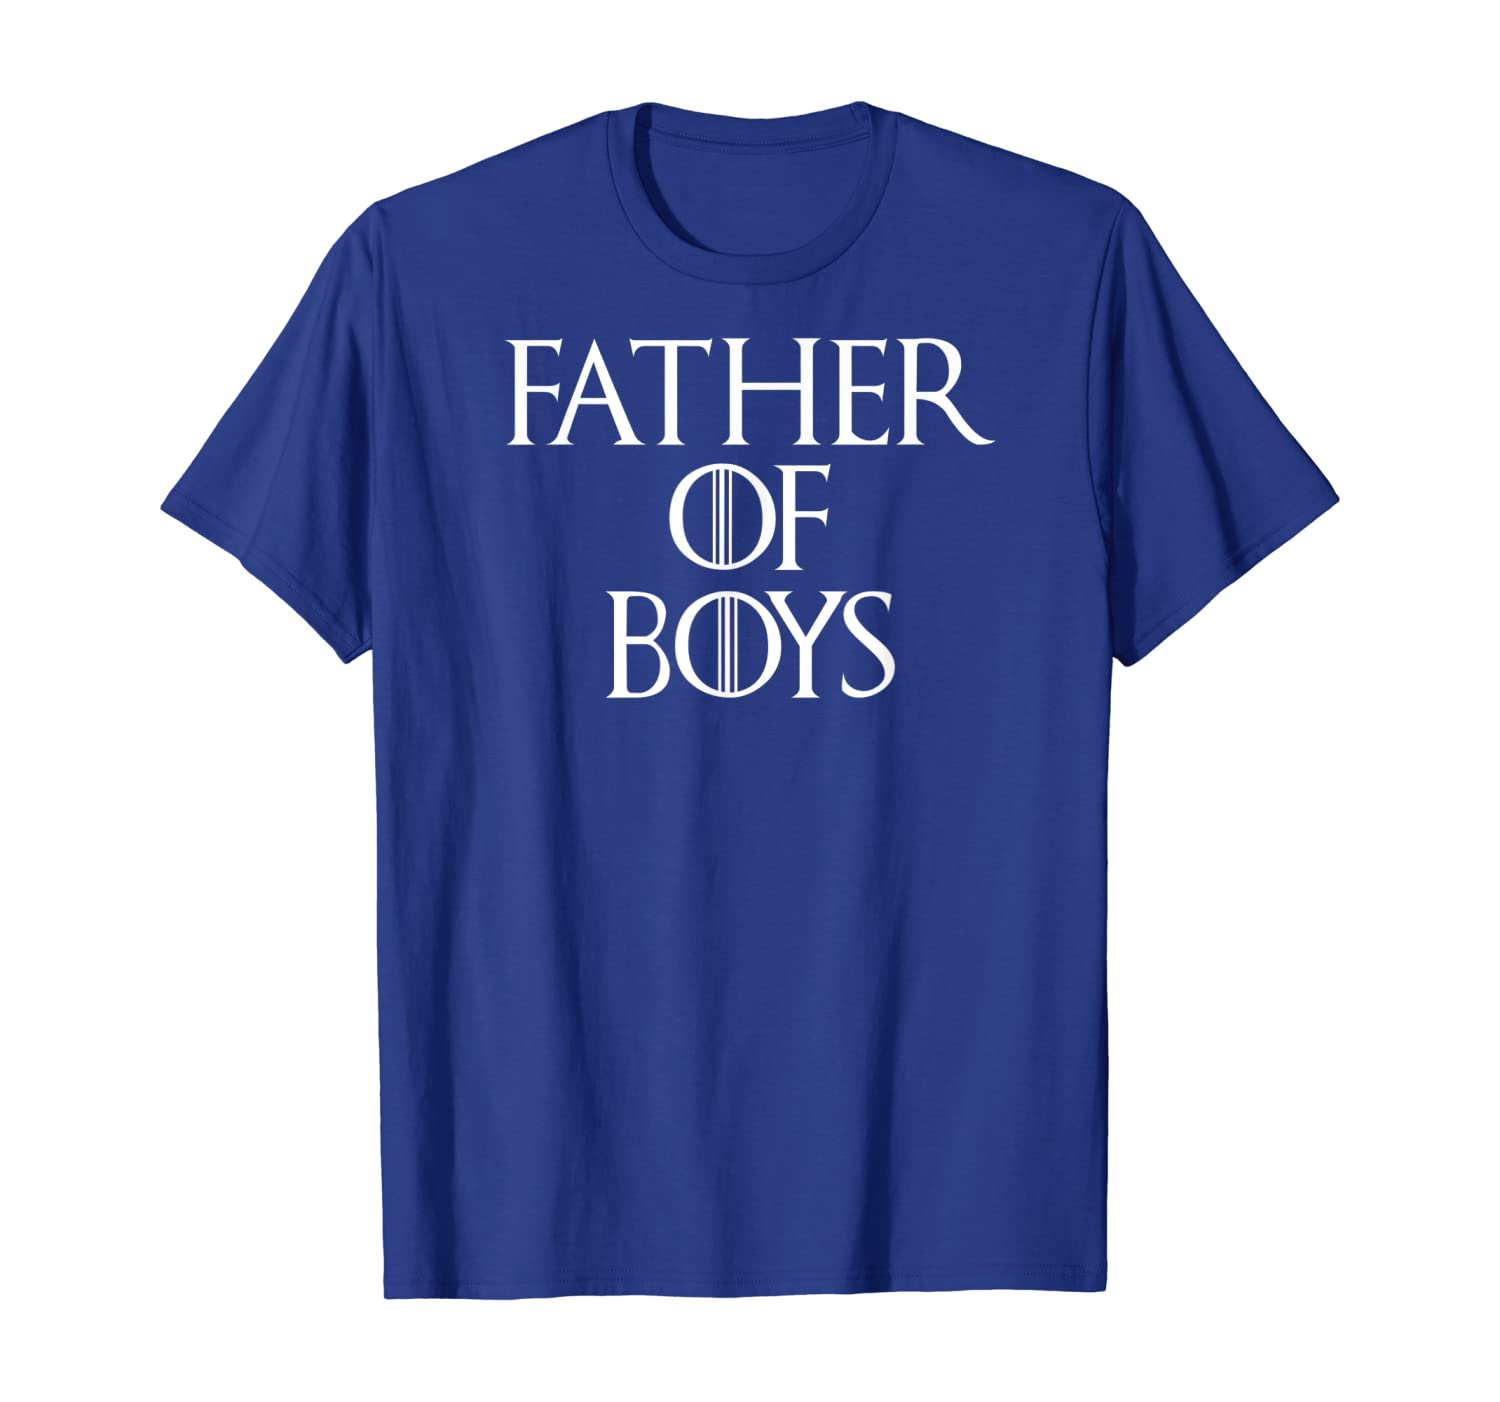 Mens Funny Dad Father Of Boys Tshirts And Tops Handsome Boy Daddy T-shirt - Dad Tshirt Up To 5xl